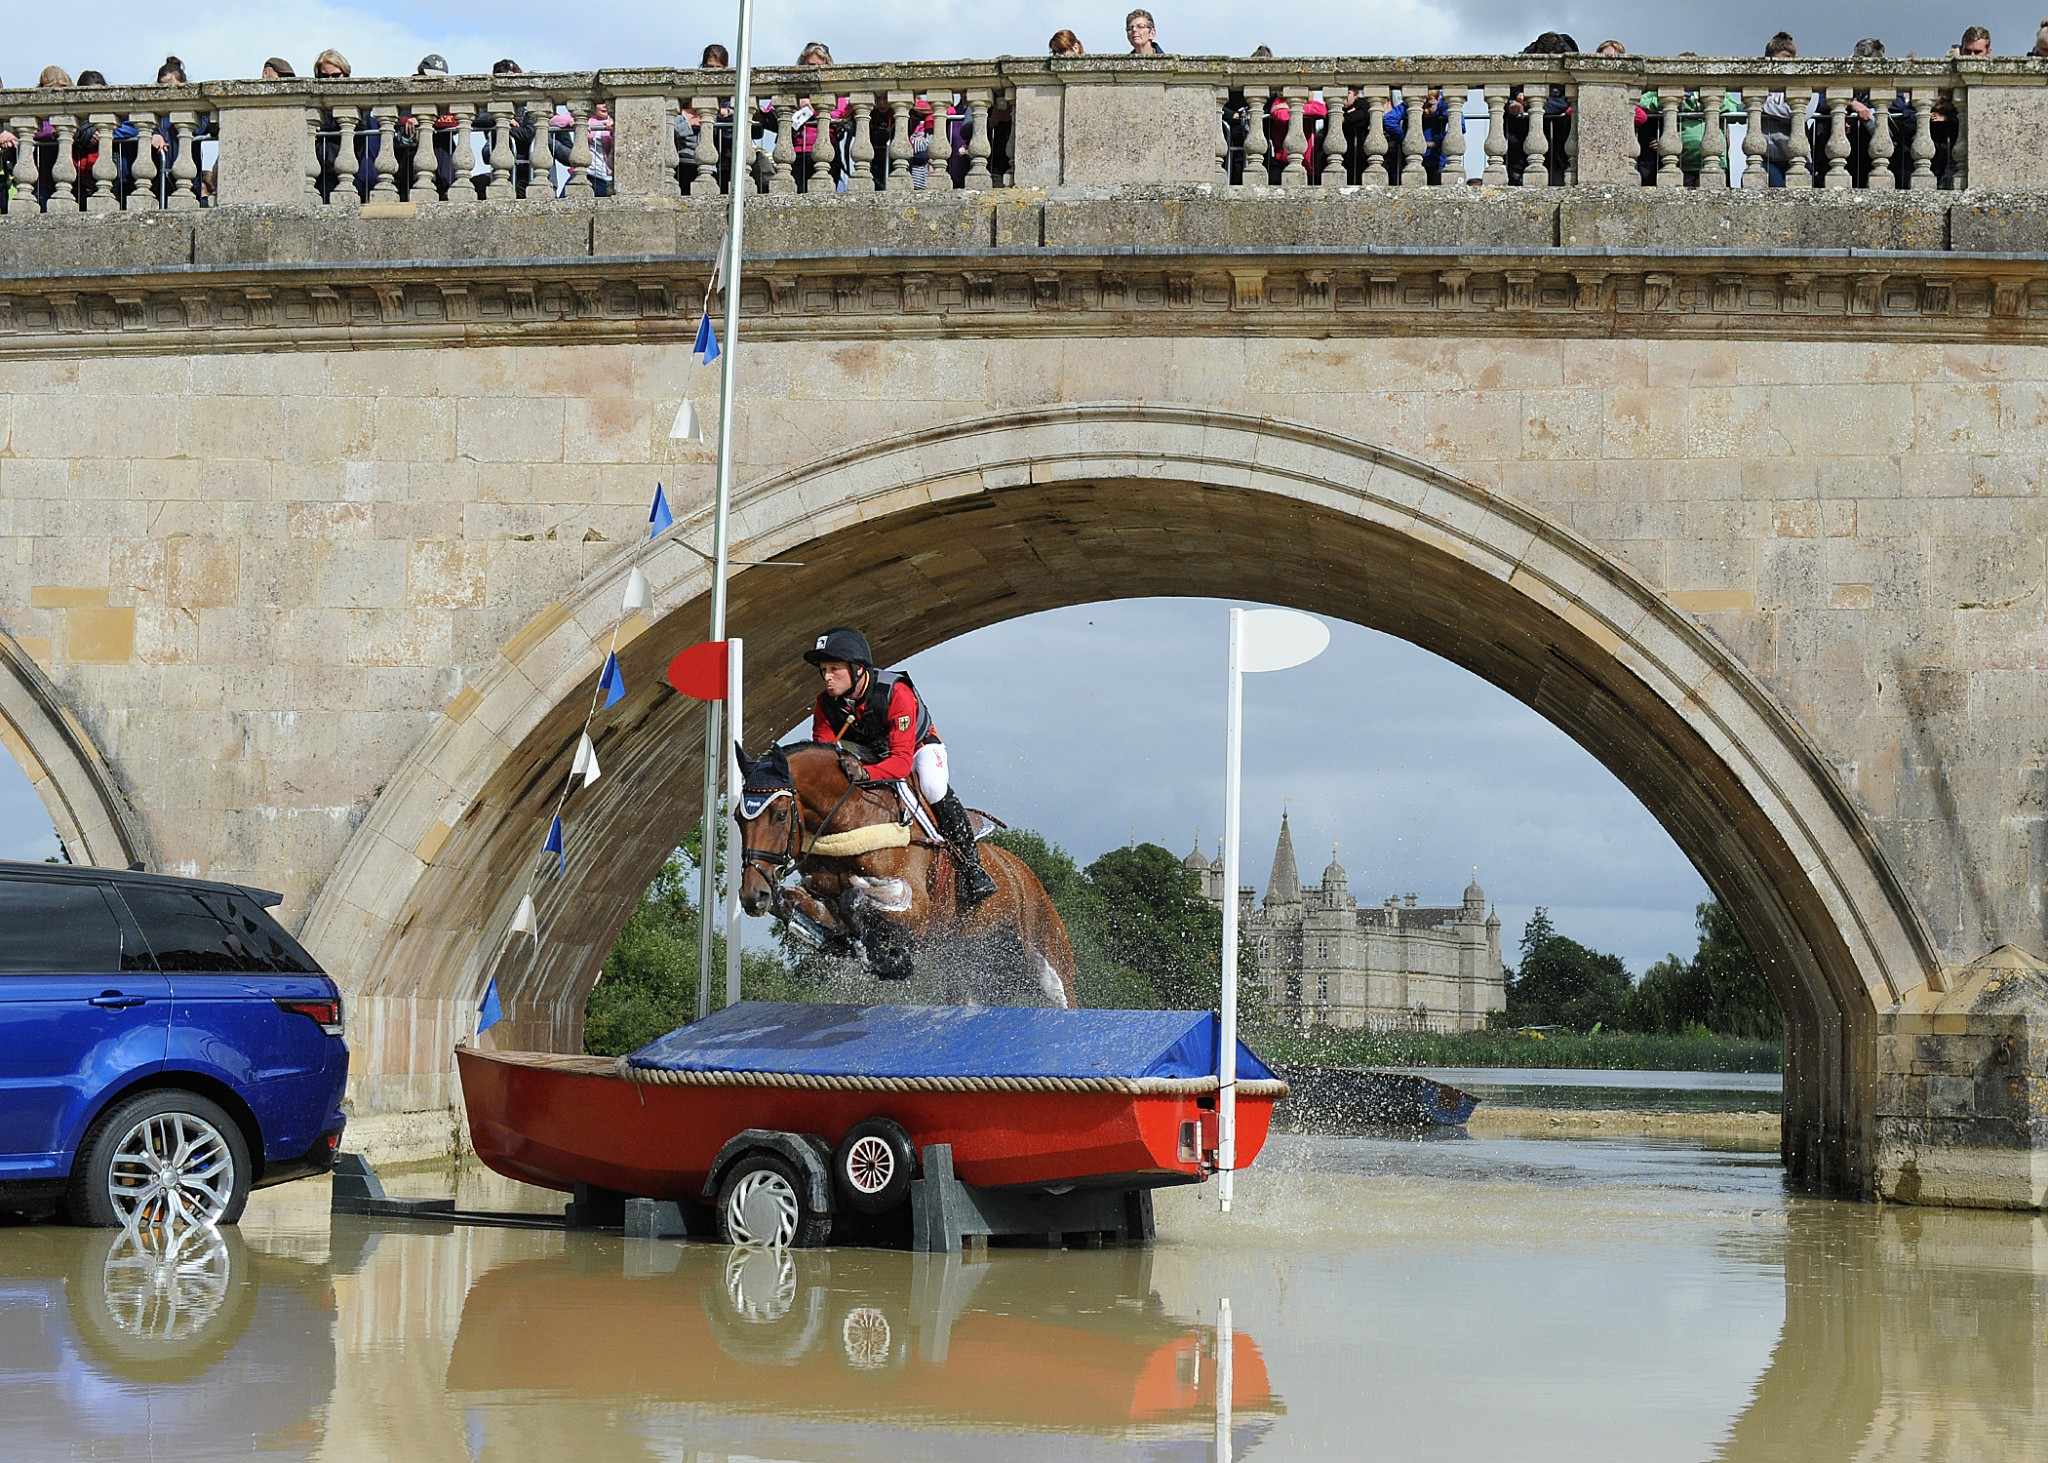 MichaelJung Bur15TM 41159 - Land Rover Burghley Horse Trials: 2016 Box Office Opening